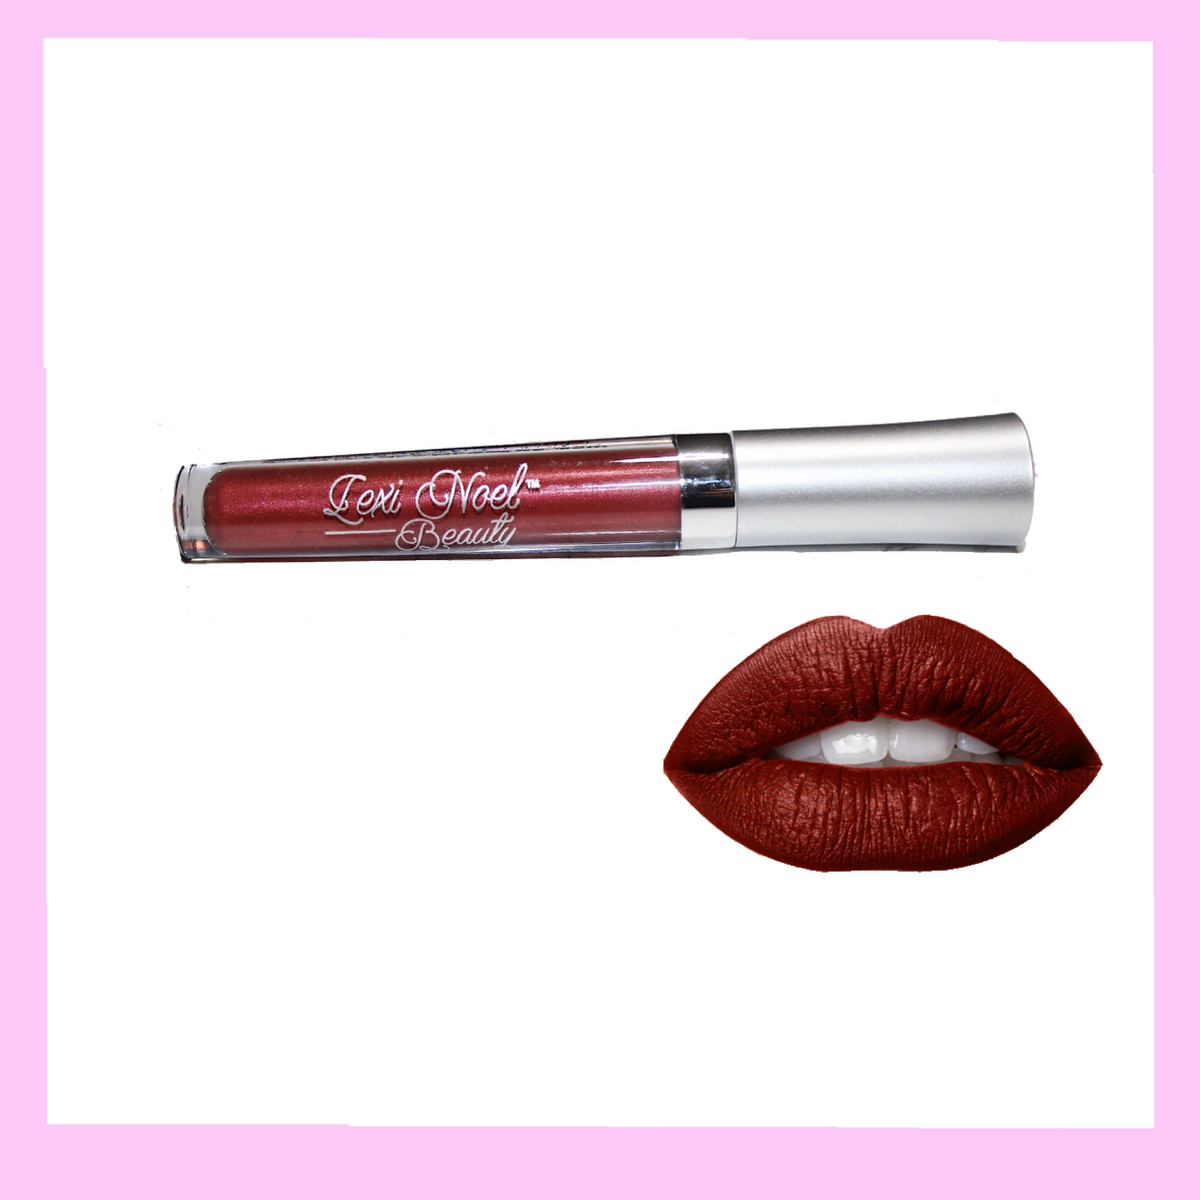 Metallic Lip Colors - lexinoelbeauty.com